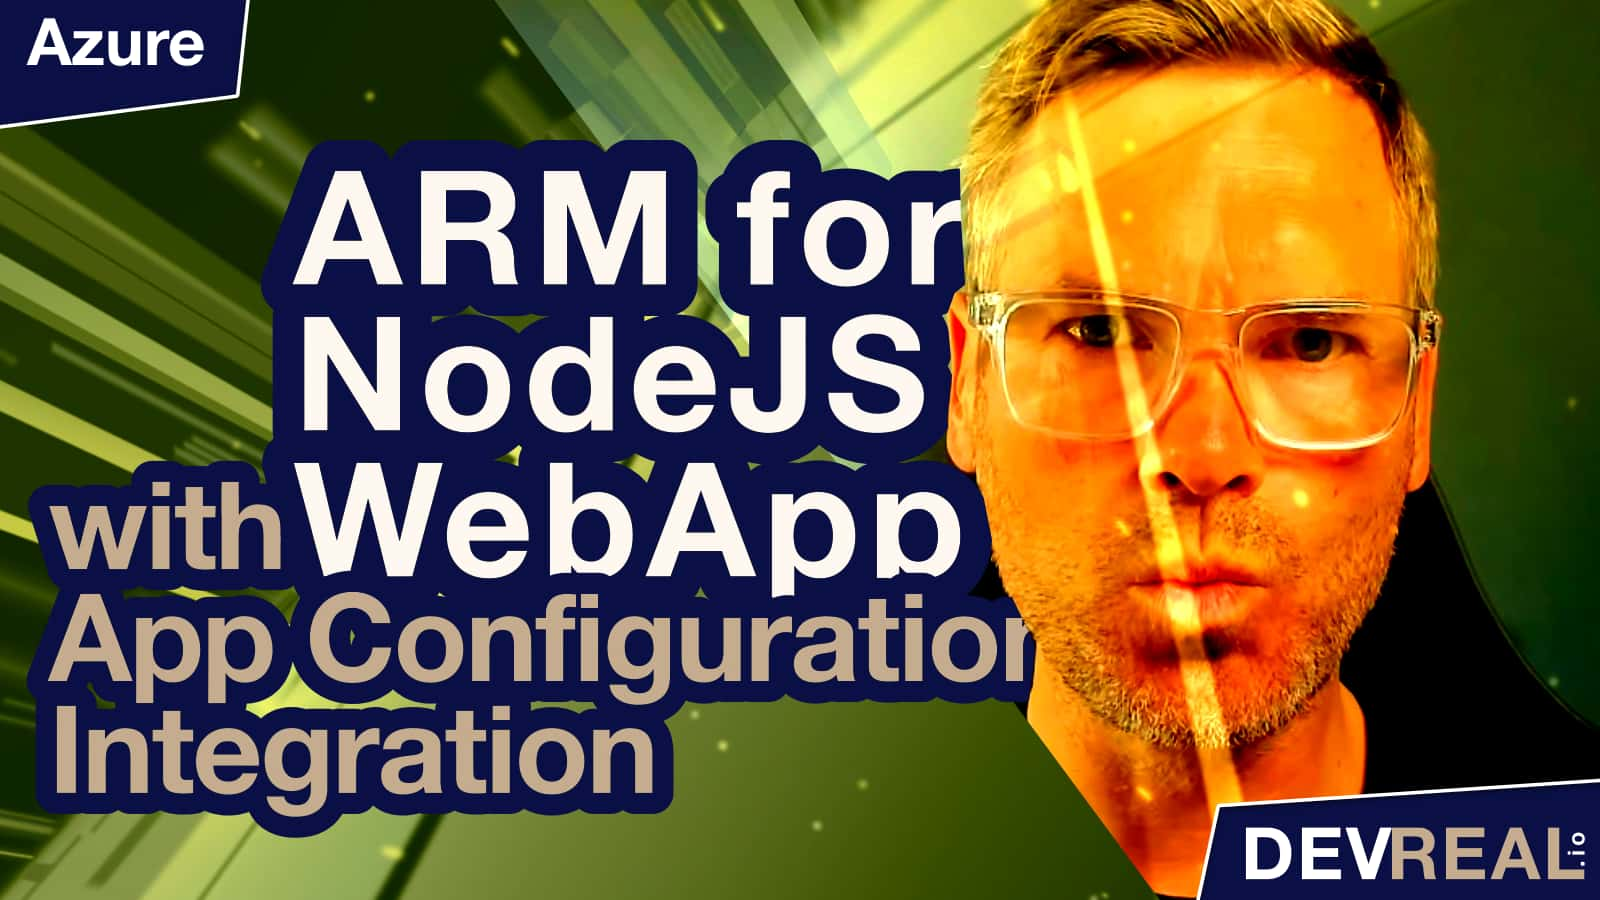 ARM for NodeJS Azure Web App with App Configuration Integration